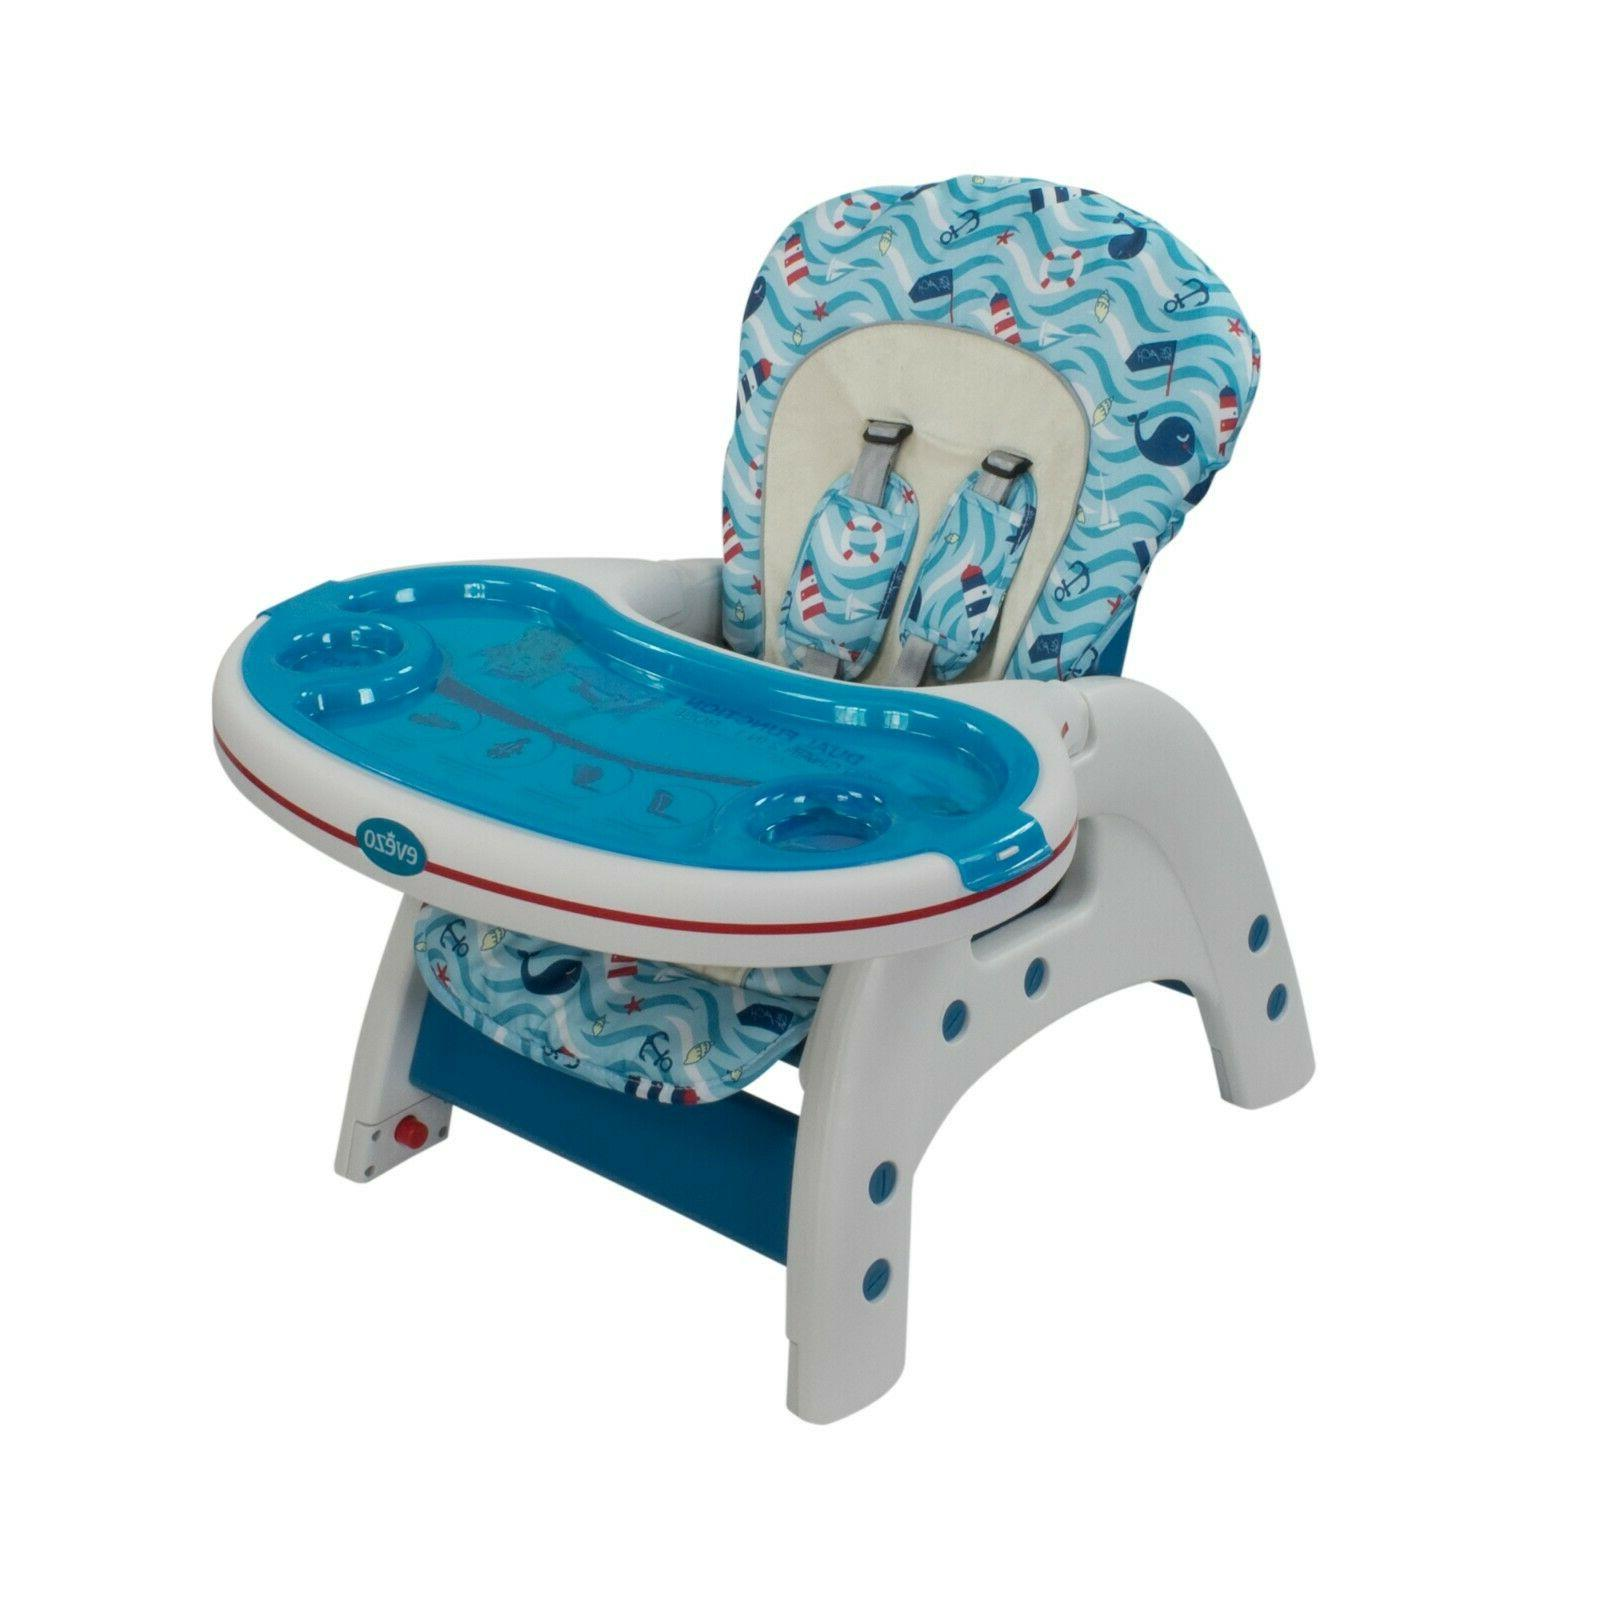 Evezo Merly Baby Chair, Convertible and